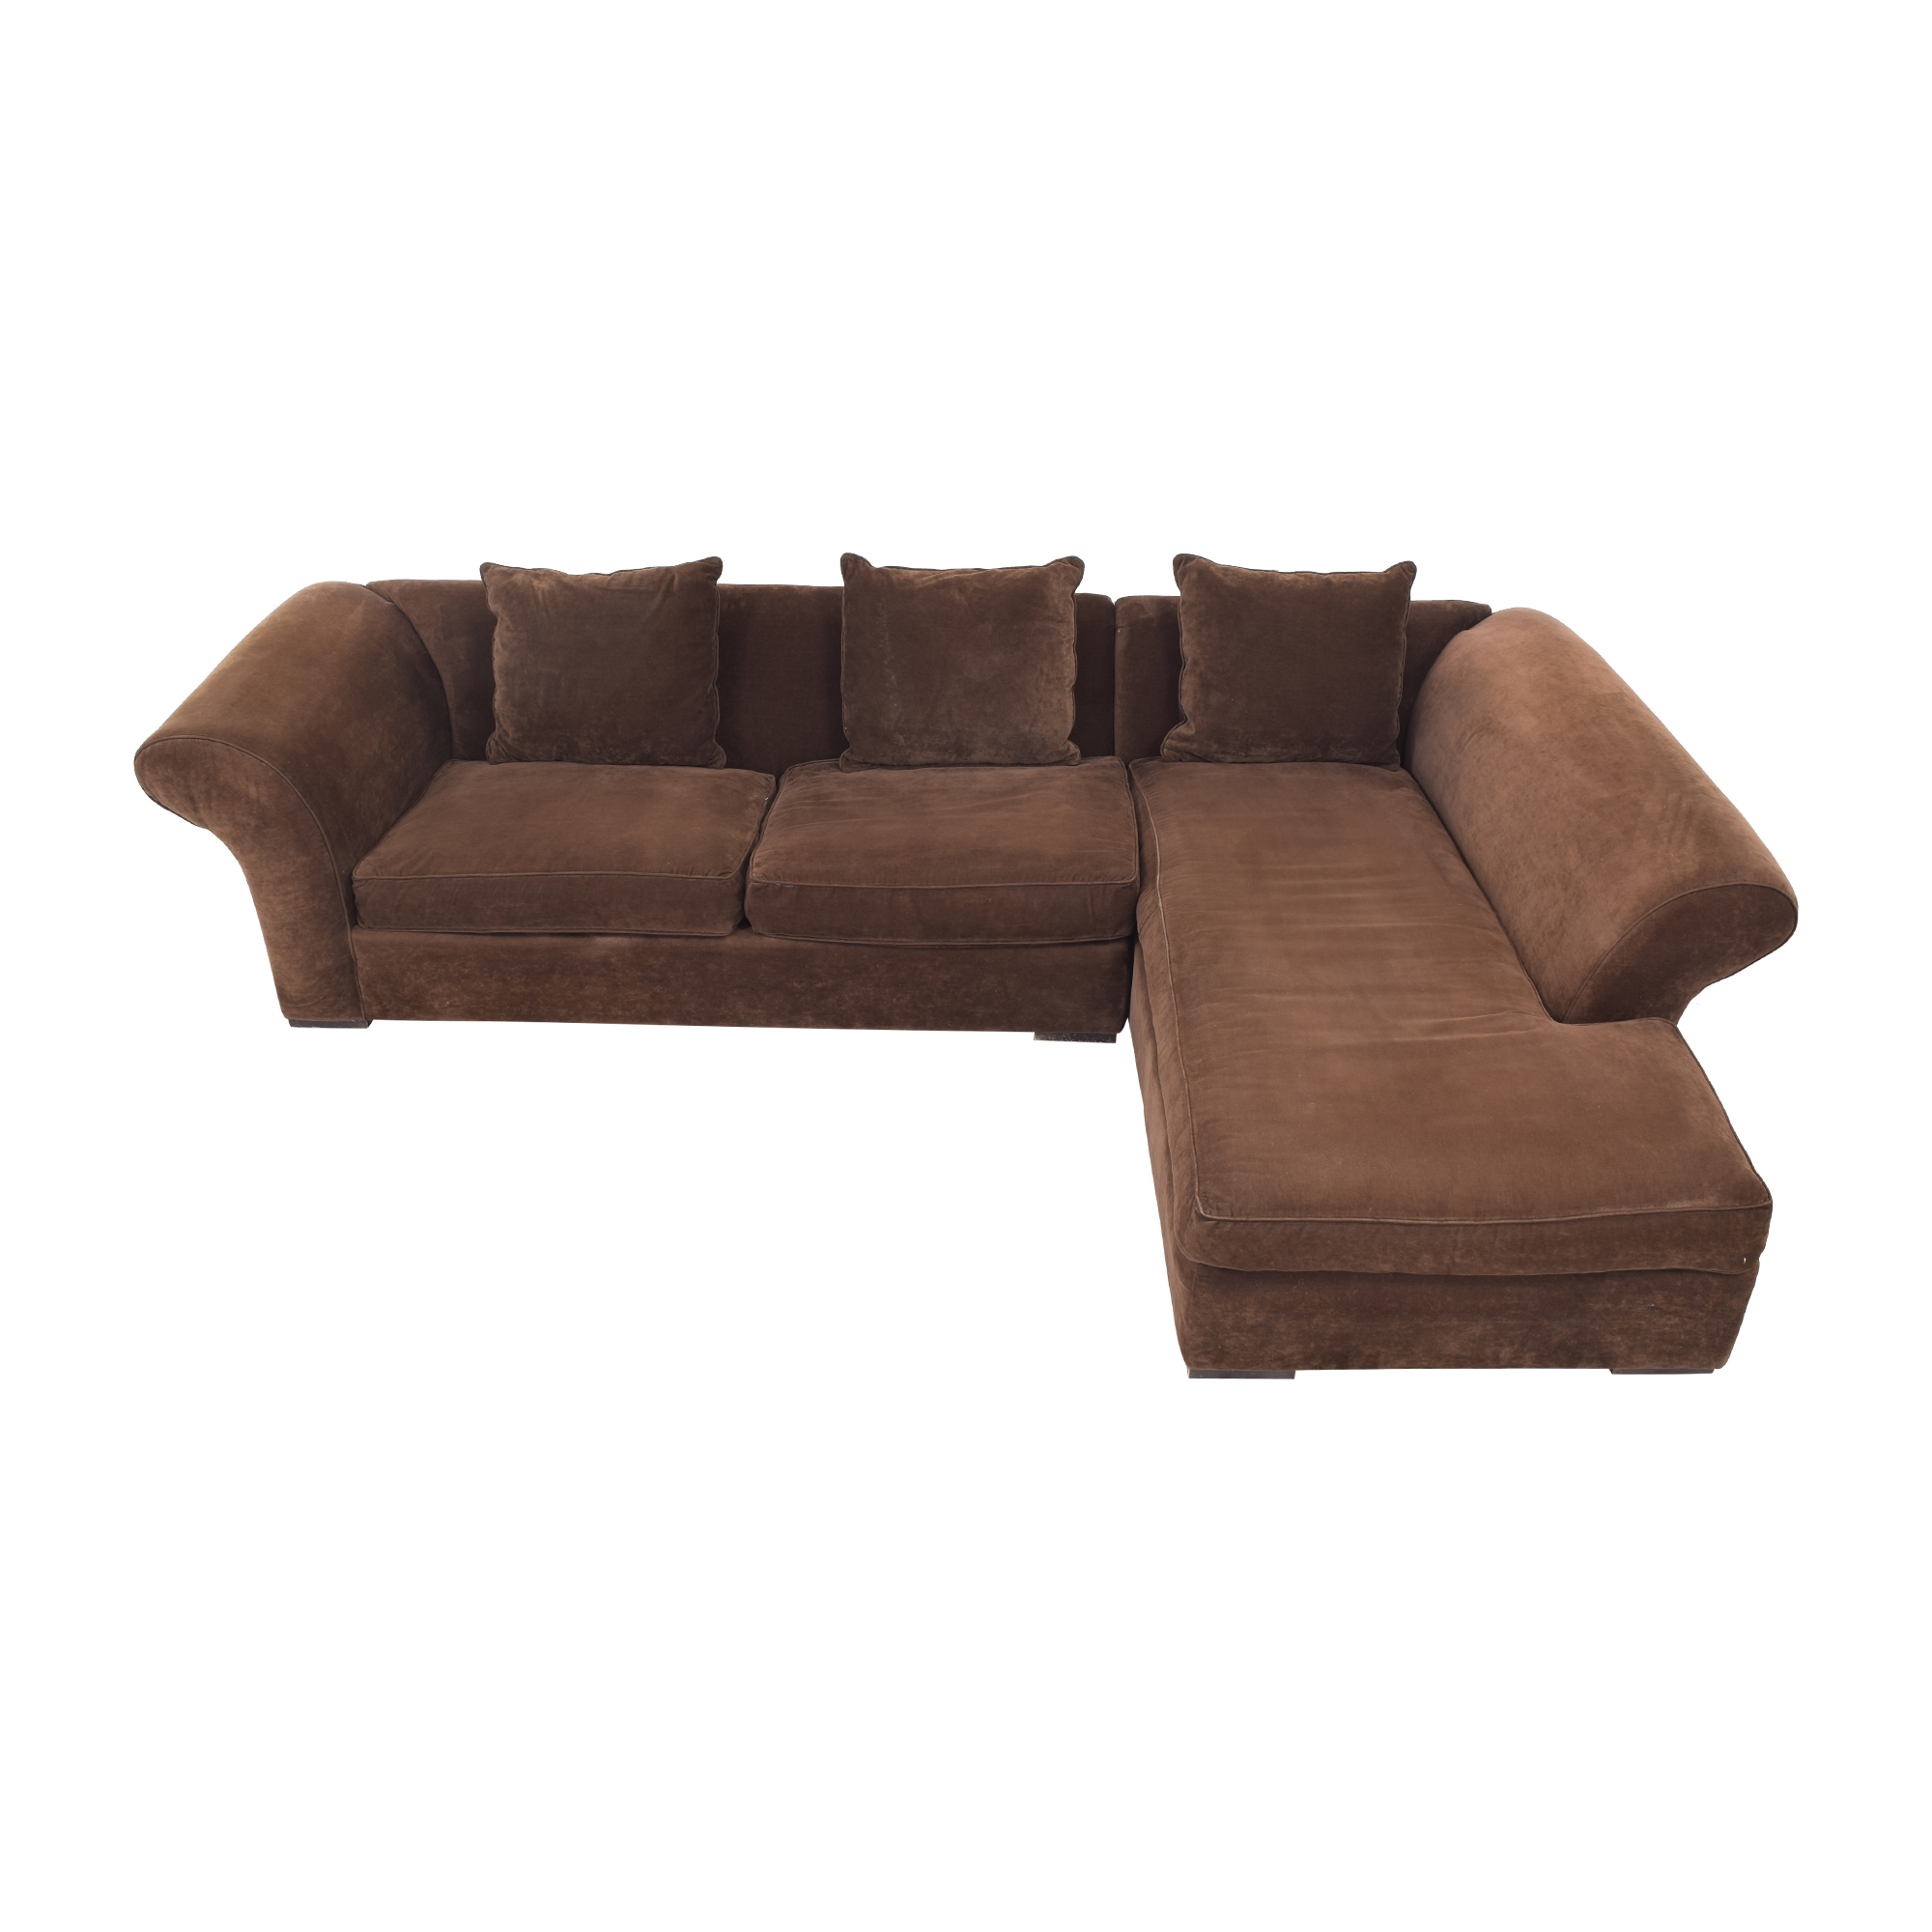 Rowe Furniture Rowe Furniture Sectional Sofa with Chaise nyc